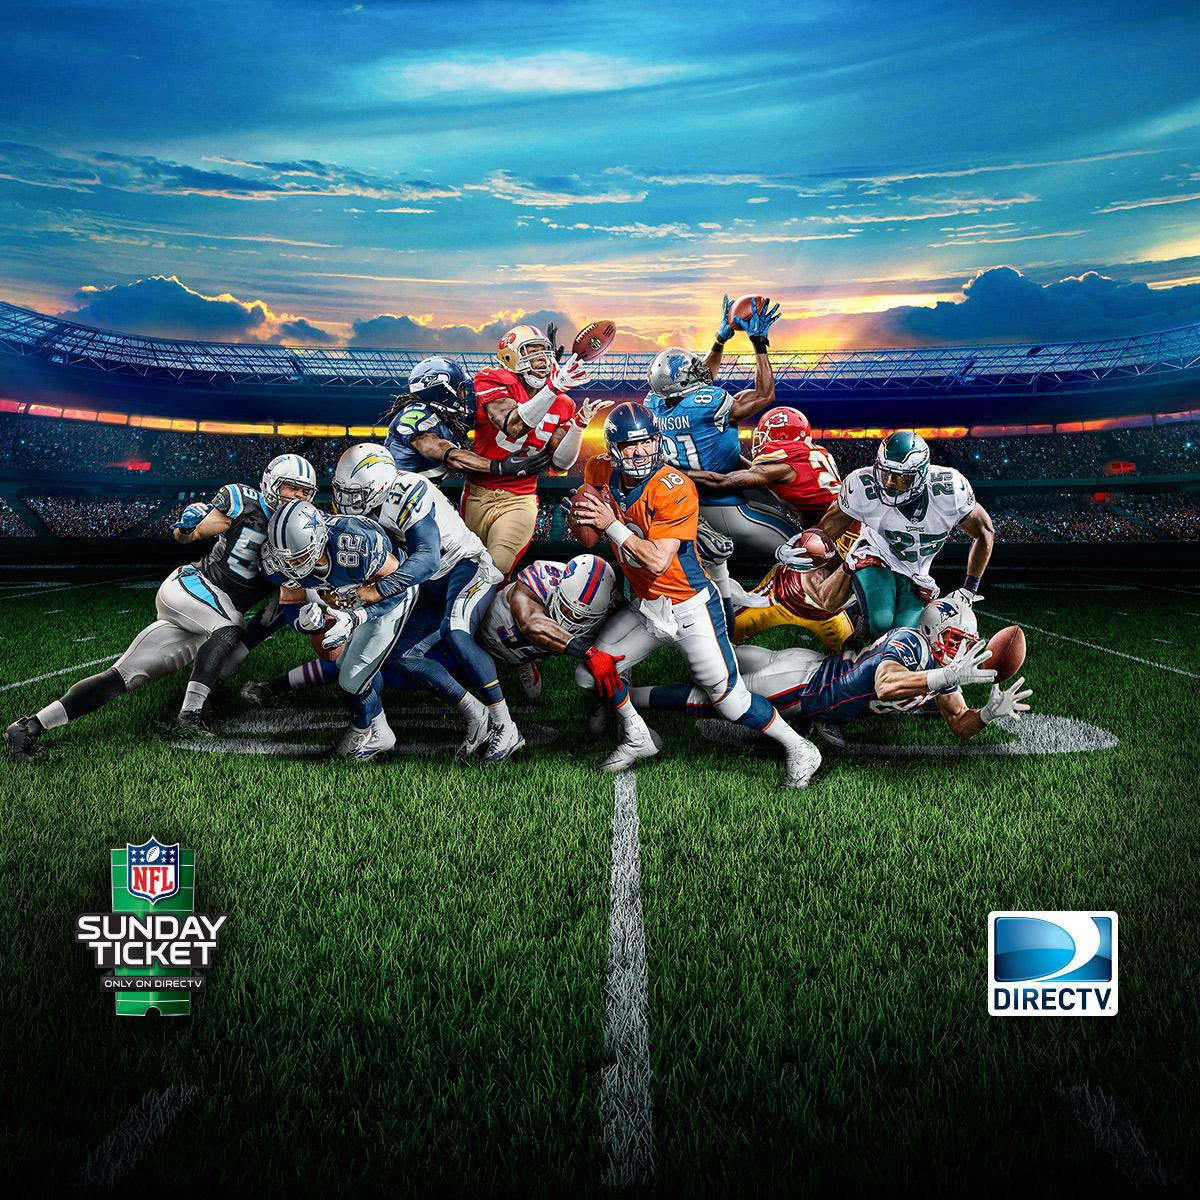 nfl on twitter watch every play on sundays with directv 2014 nfl sunday ticket 150 channels. Black Bedroom Furniture Sets. Home Design Ideas